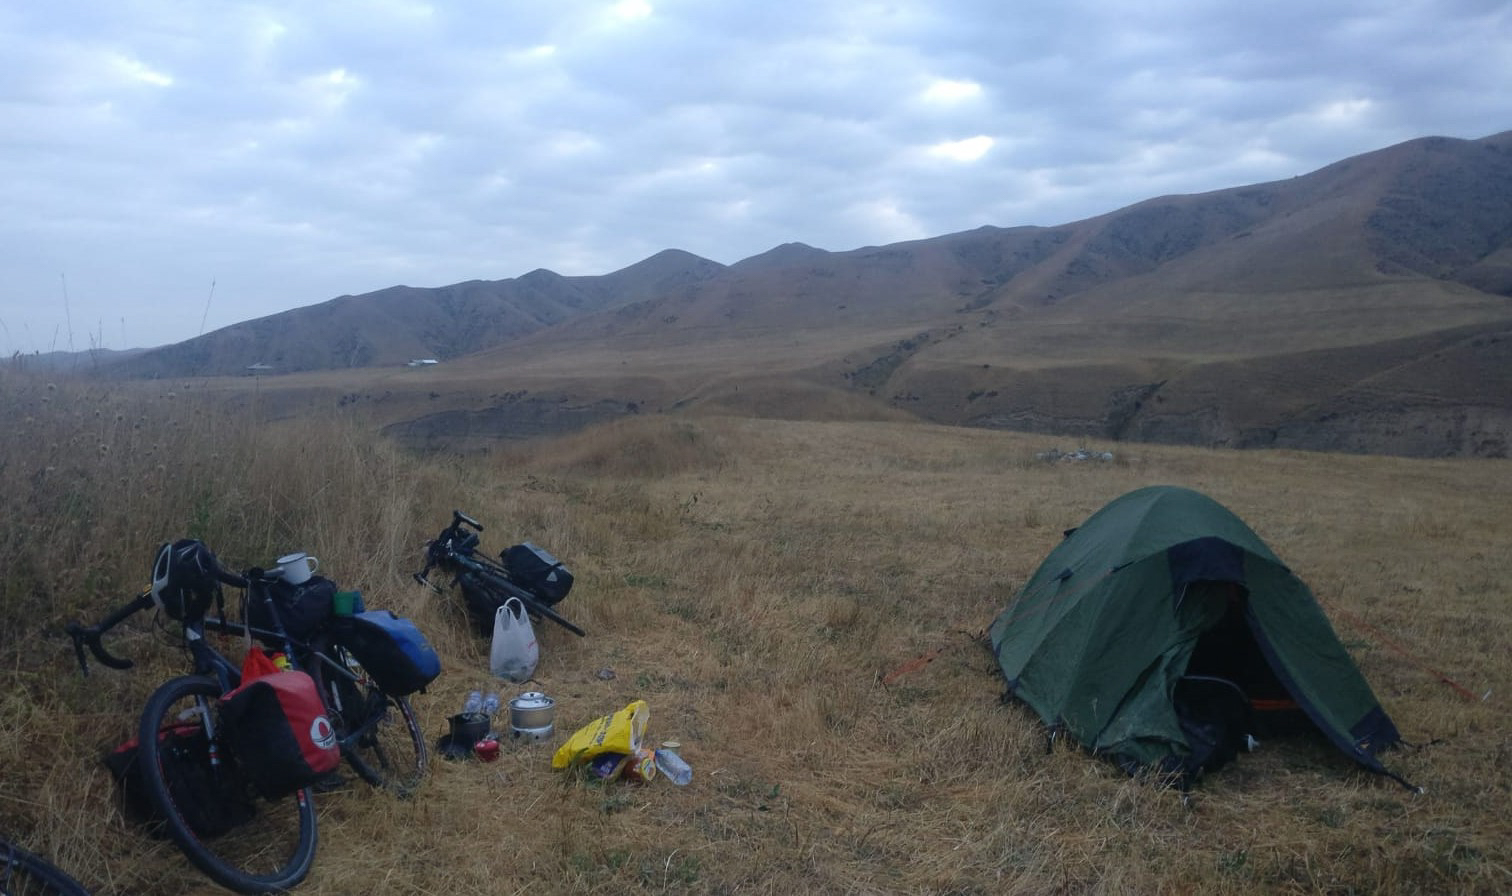 Camping near the Taldyk Pass on the Pamir Highway